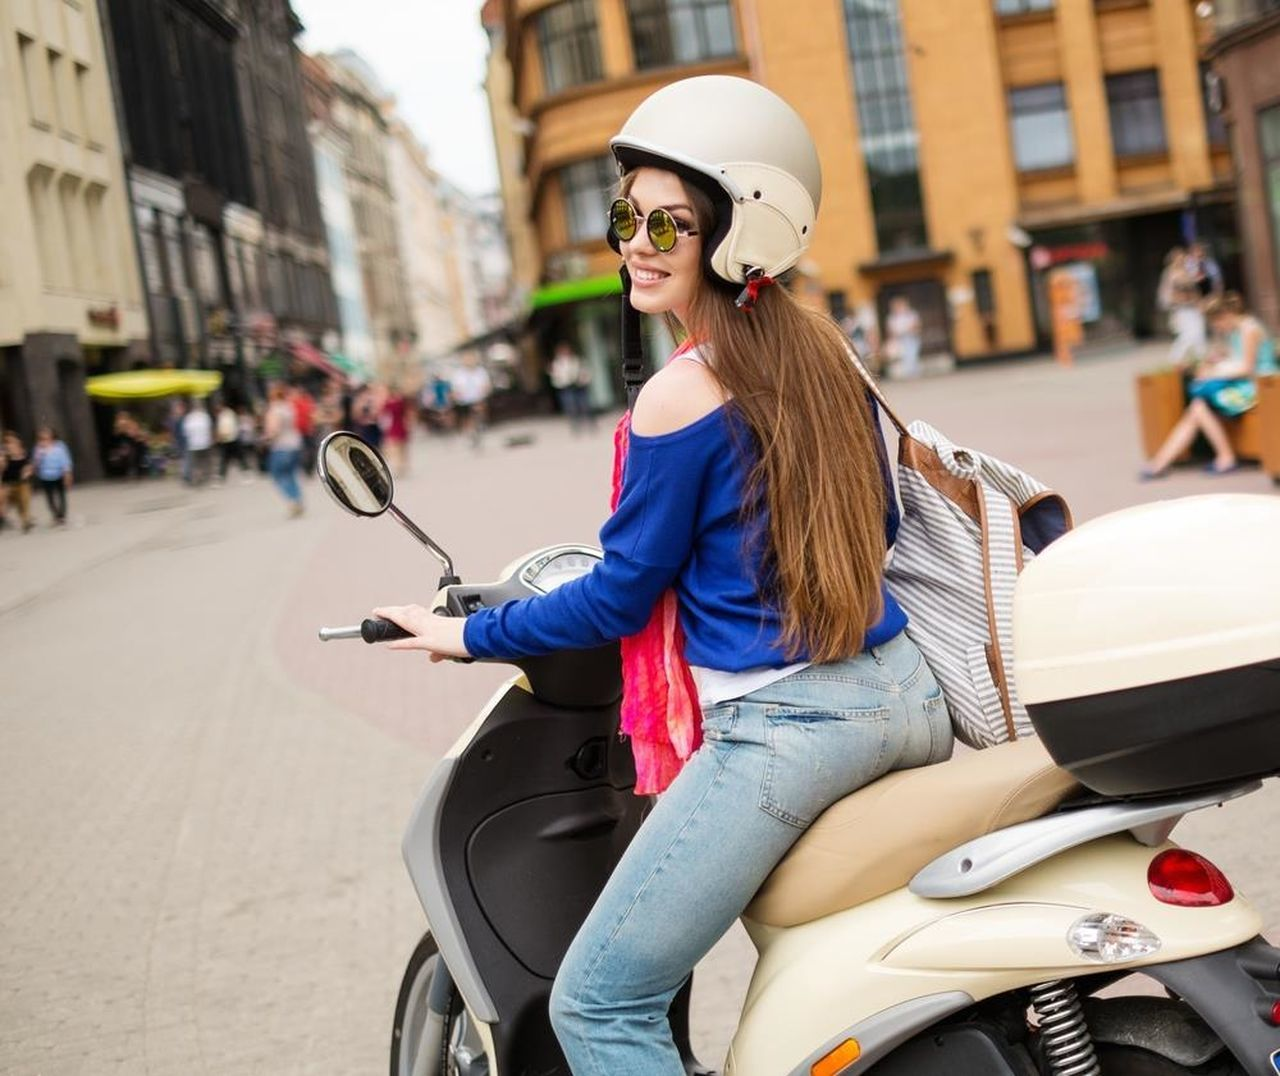 real people, one person, transportation, mode of transport, incidental people, young adult, sunglasses, young women, casual clothing, day, helmet, side view, lifestyles, outdoors, headwear, technology, eyeglasses, smiling, wireless technology, people